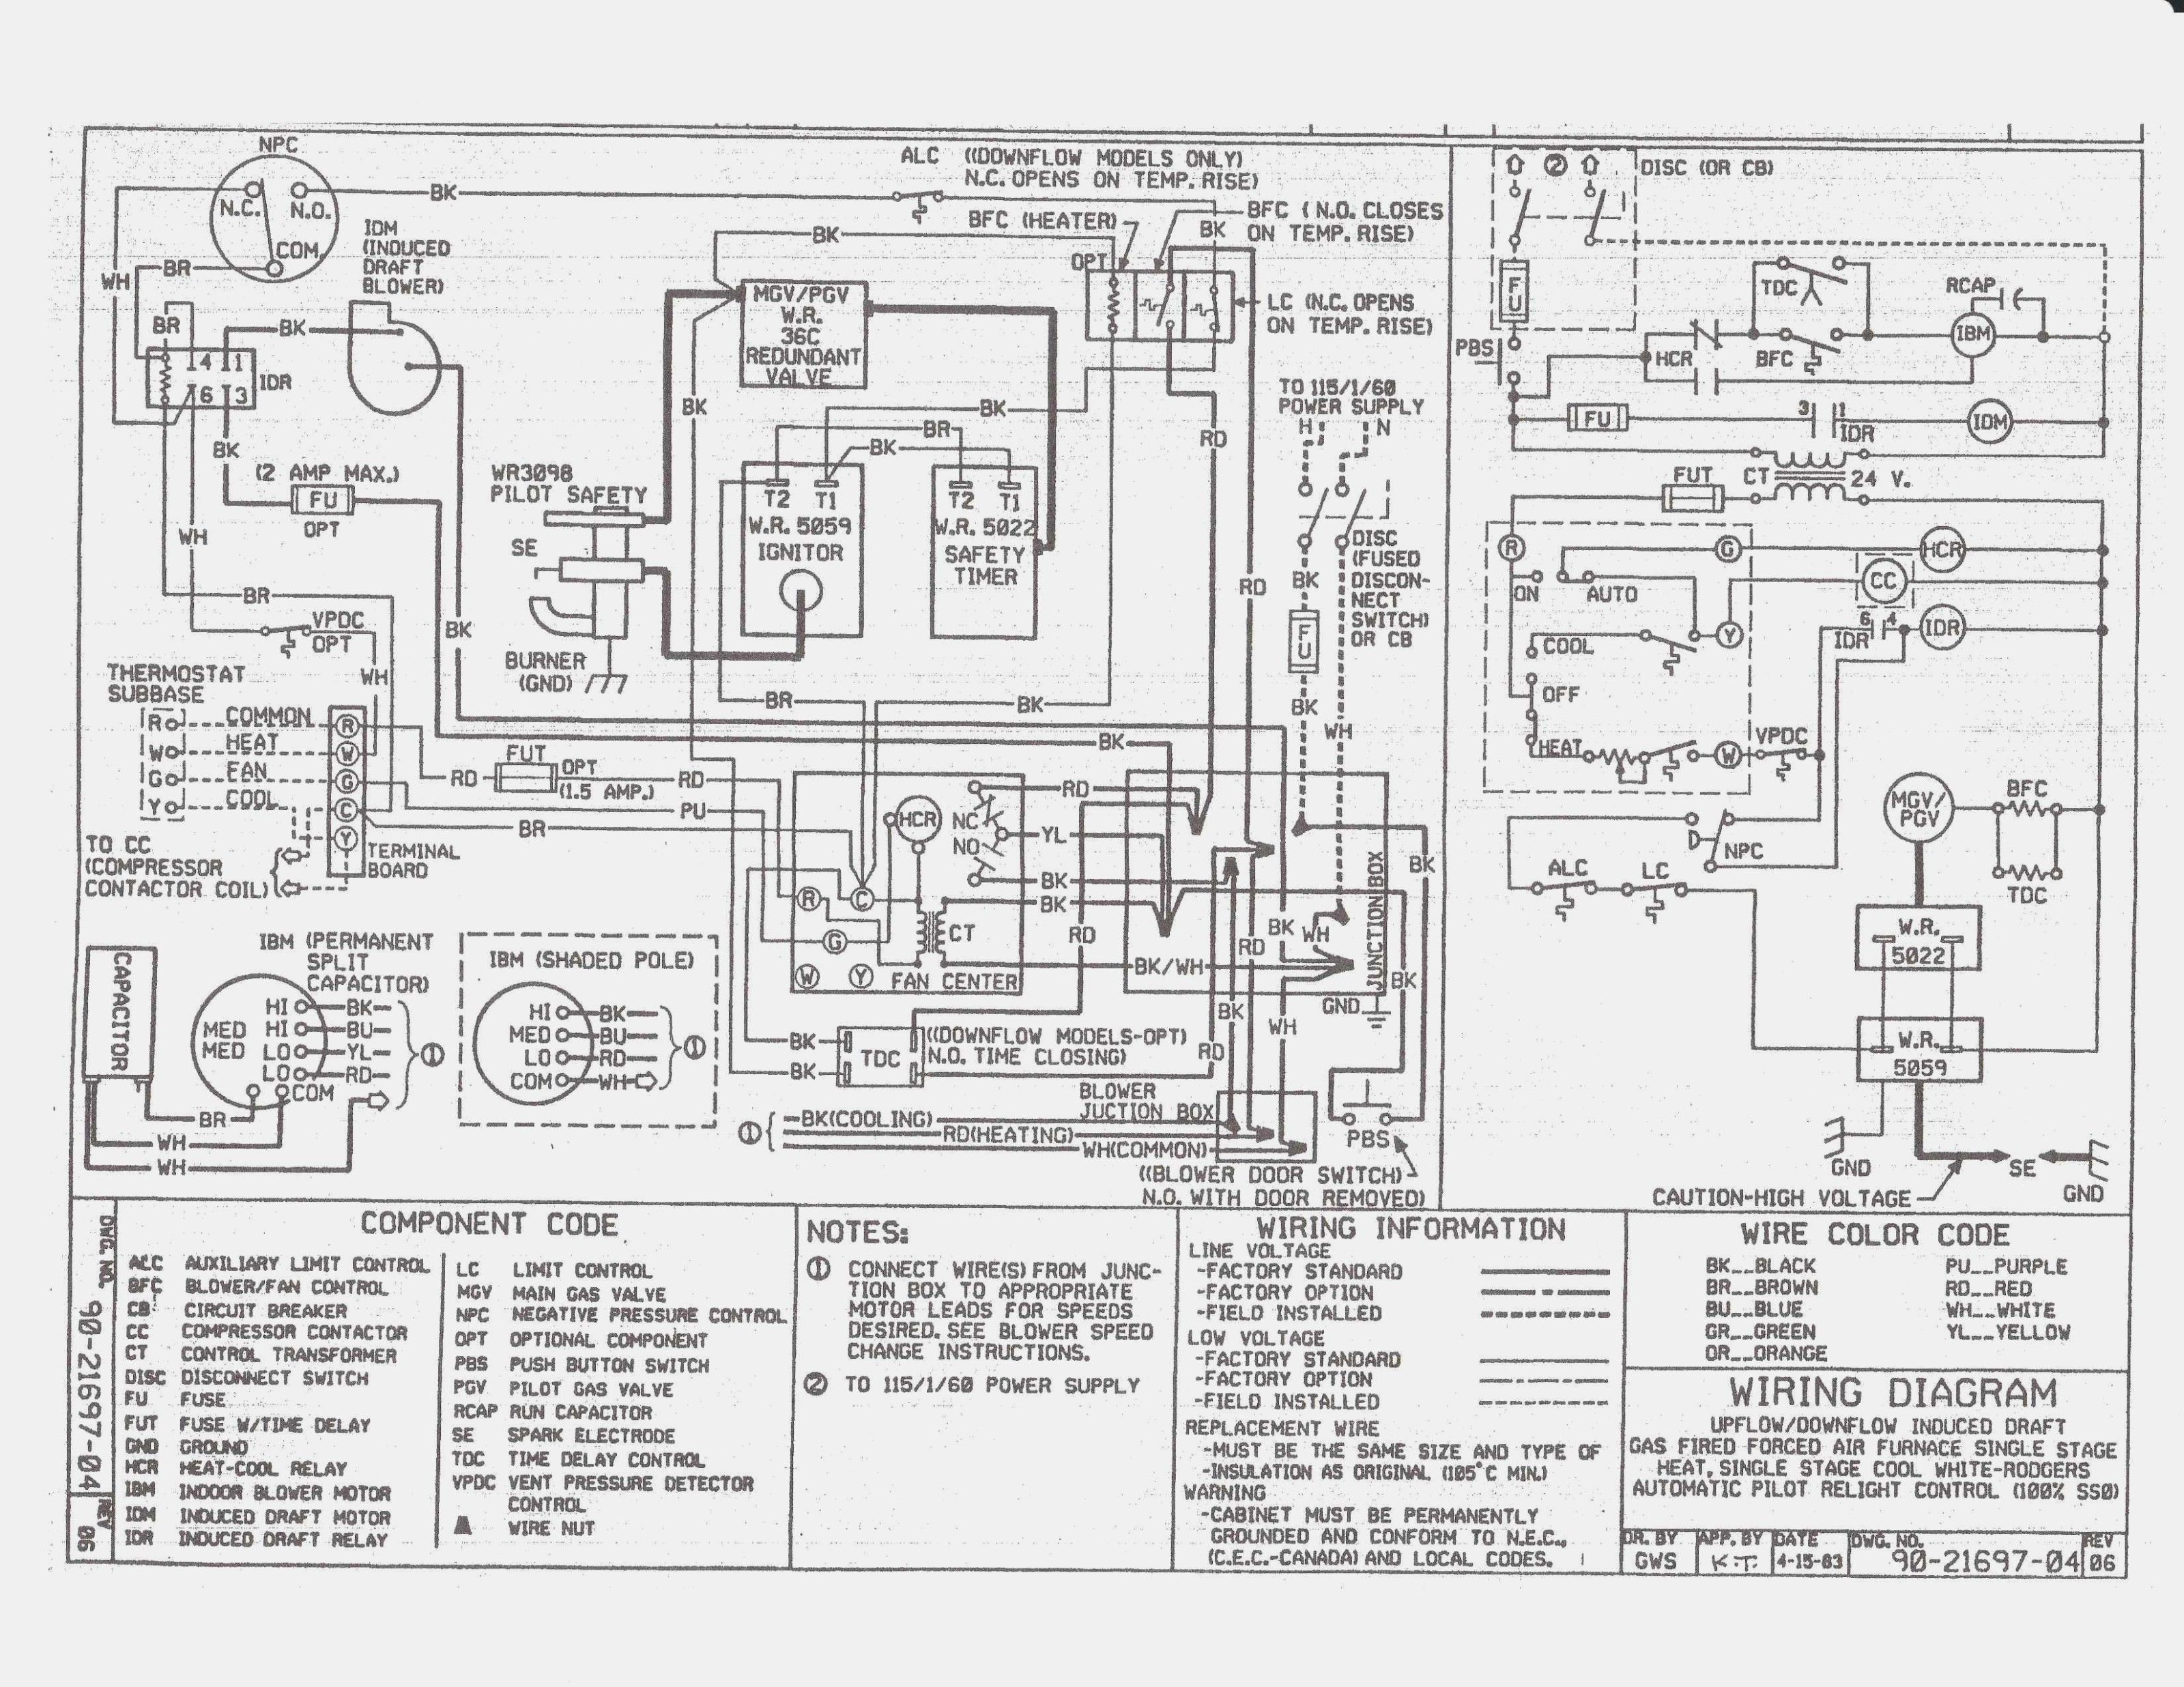 New Wiring Diagram For Air Conditioning Unit